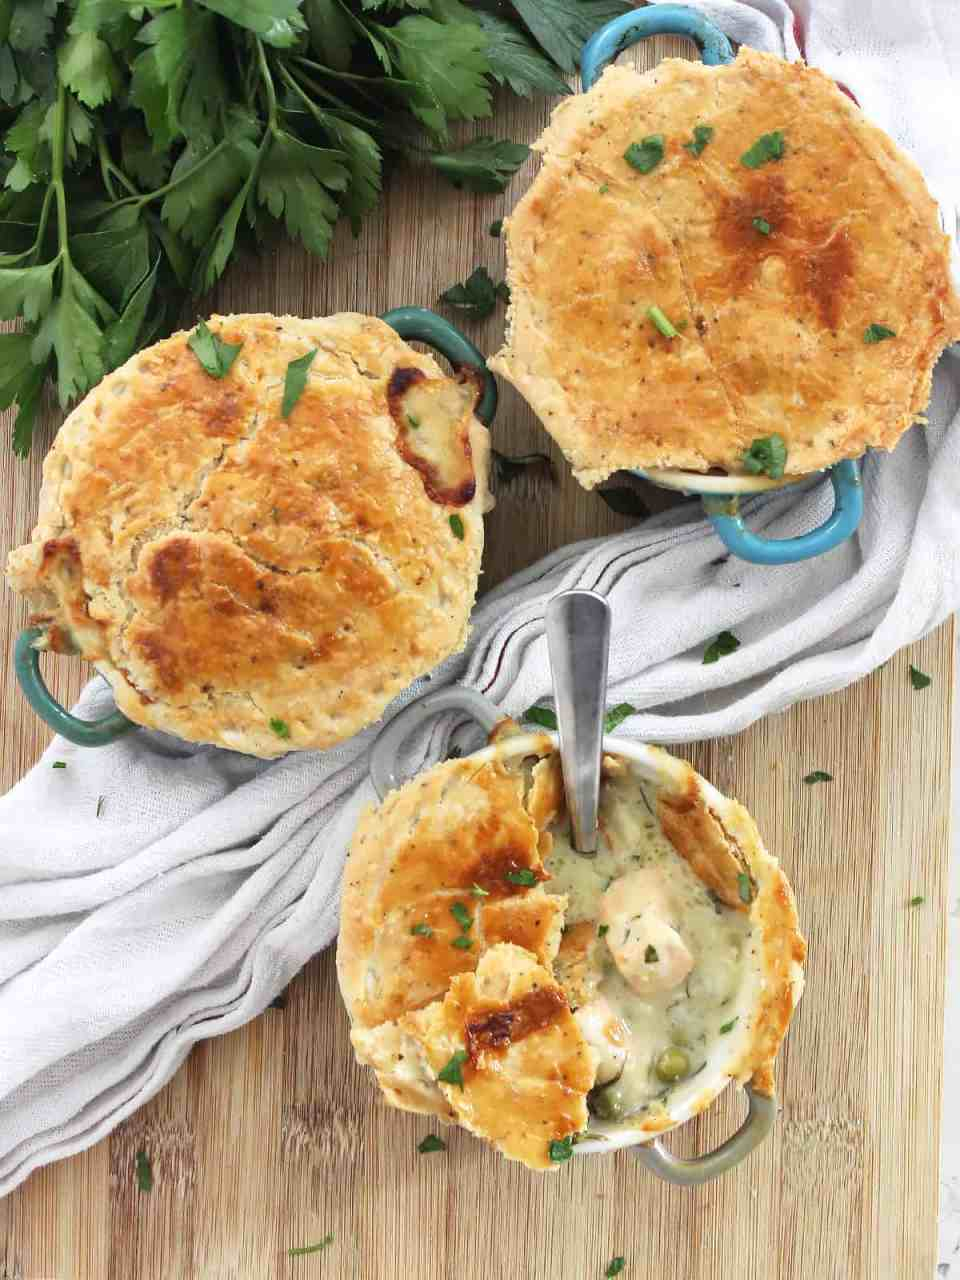 Three salmon pies on a wooden chopping board with fresh parsley.